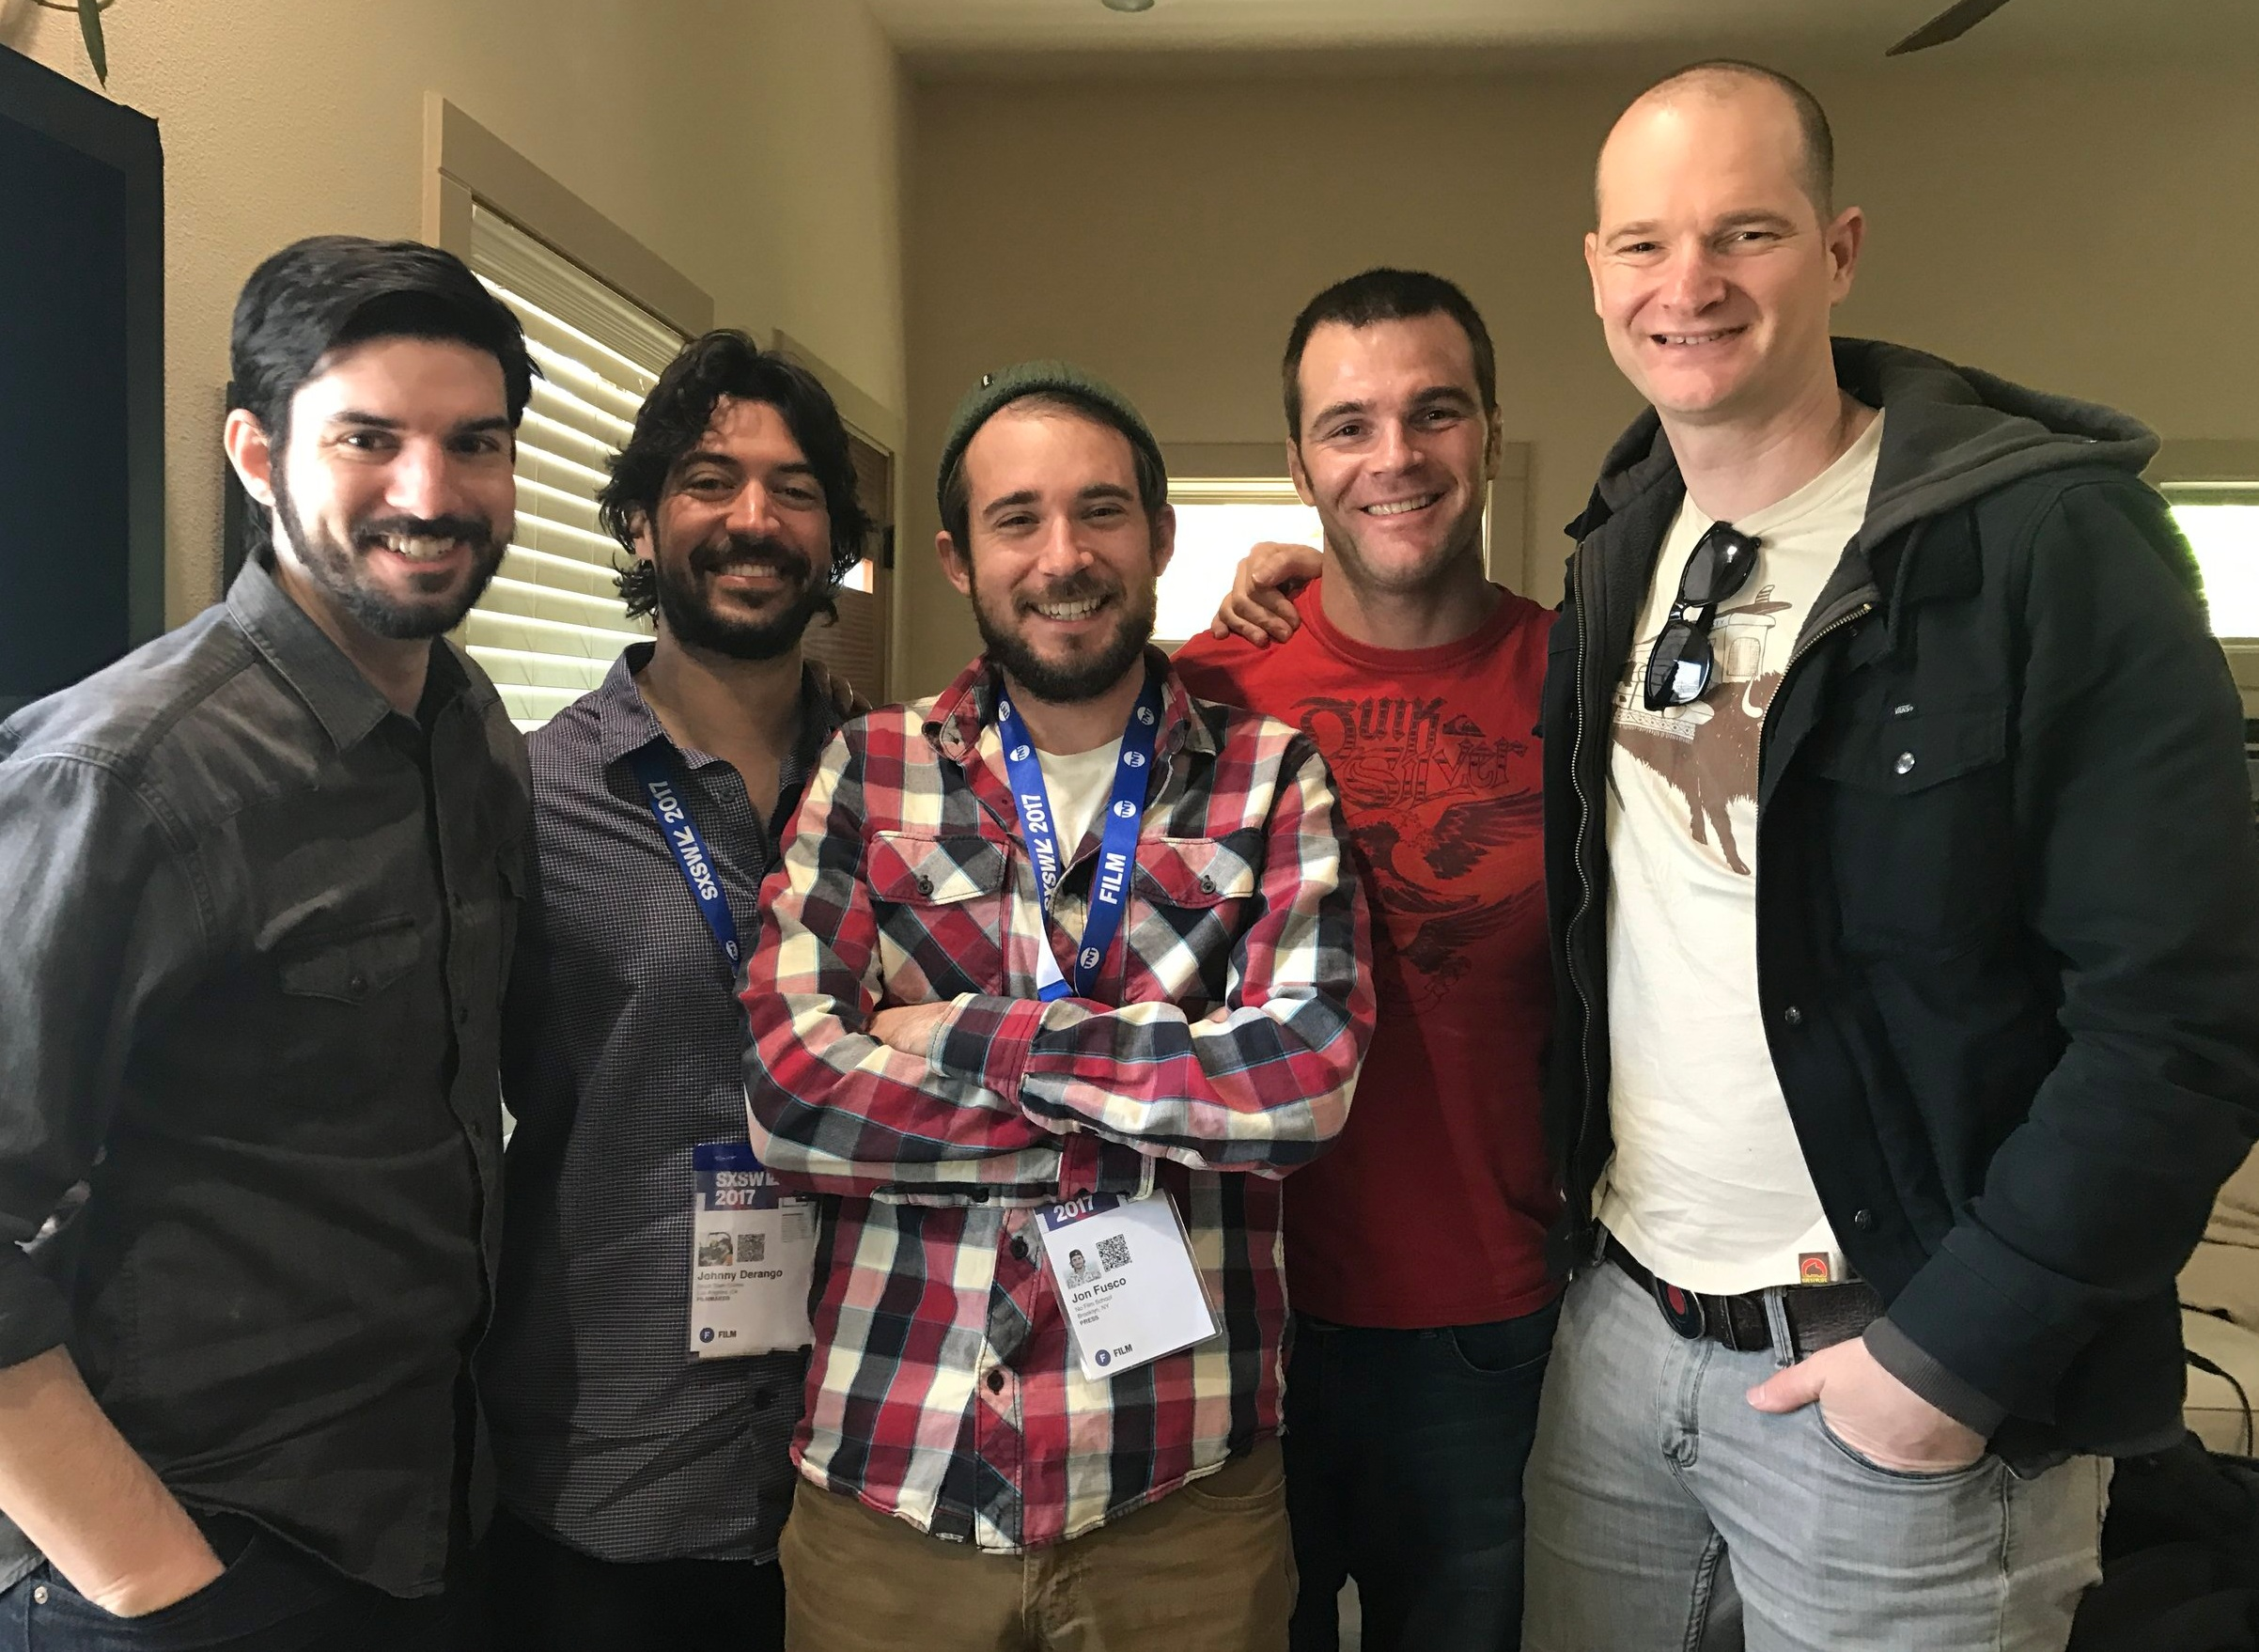 No Film School: STC - STC filmmakers, composer, and DP for an in depth podcast interview.